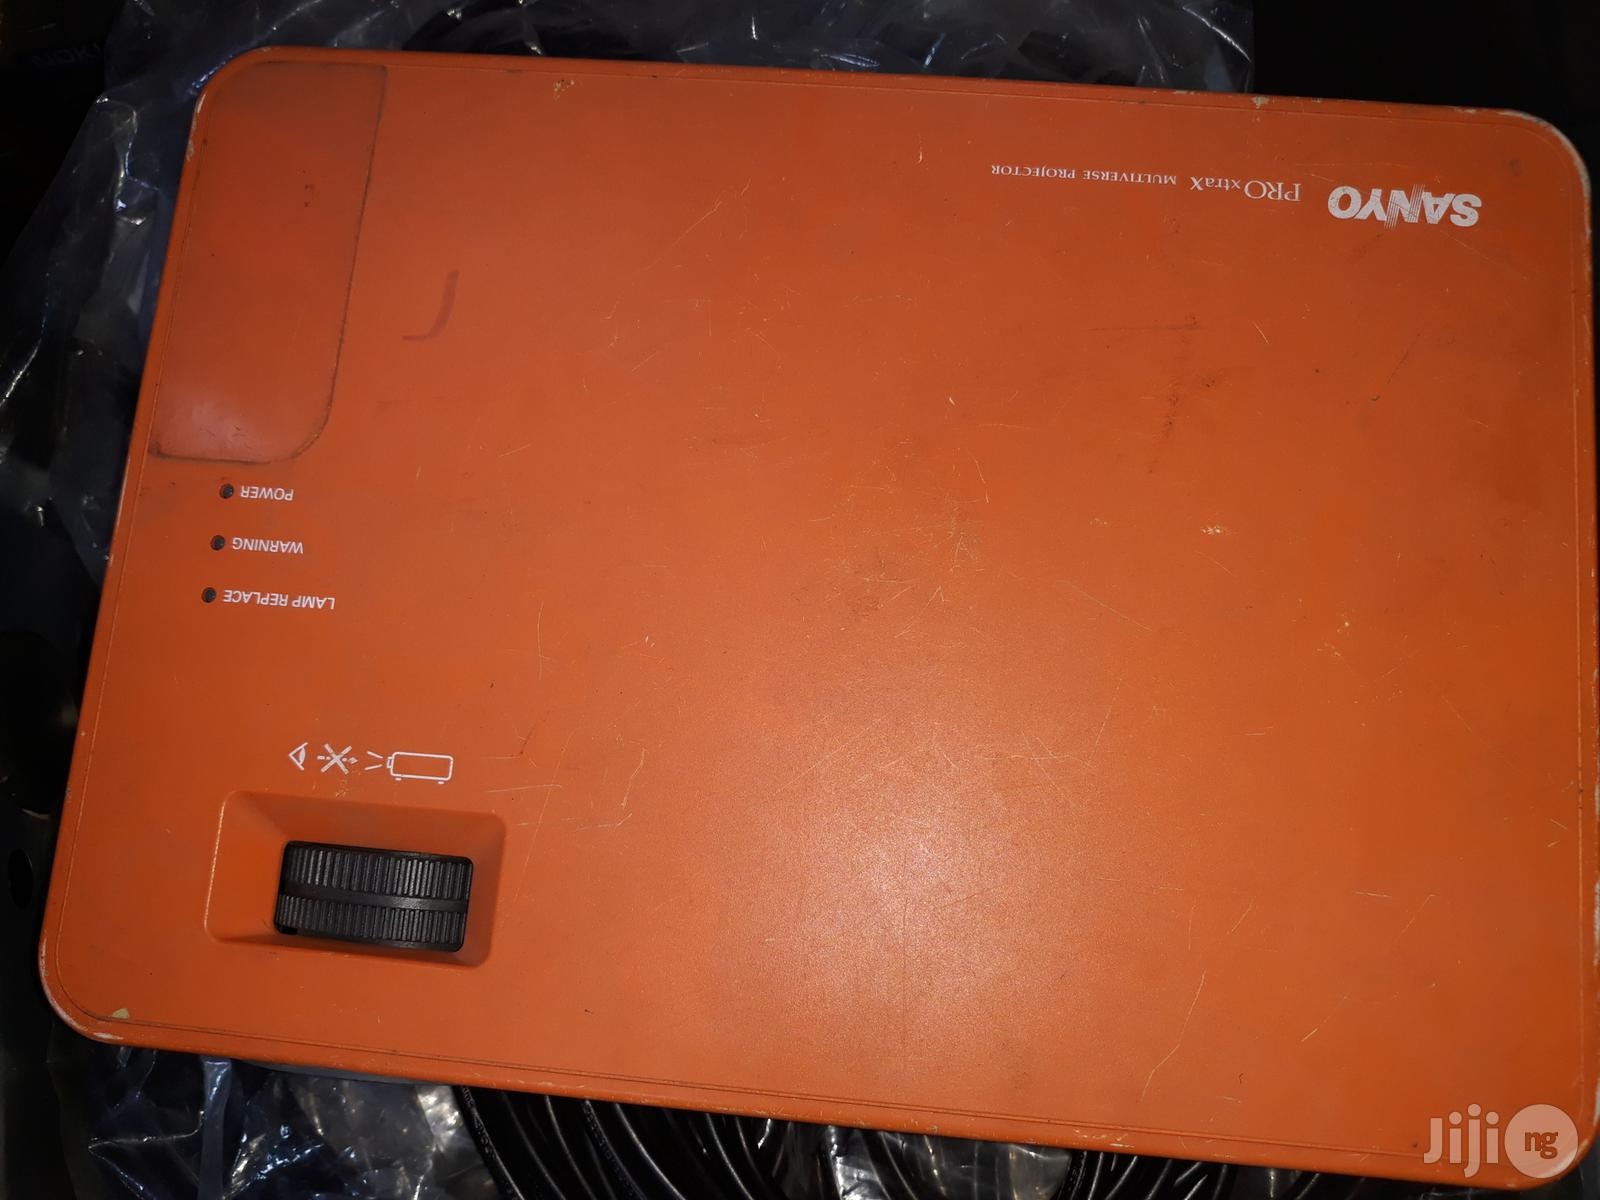 Sanyo Projector | TV & DVD Equipment for sale in Ikeja, Lagos State, Nigeria